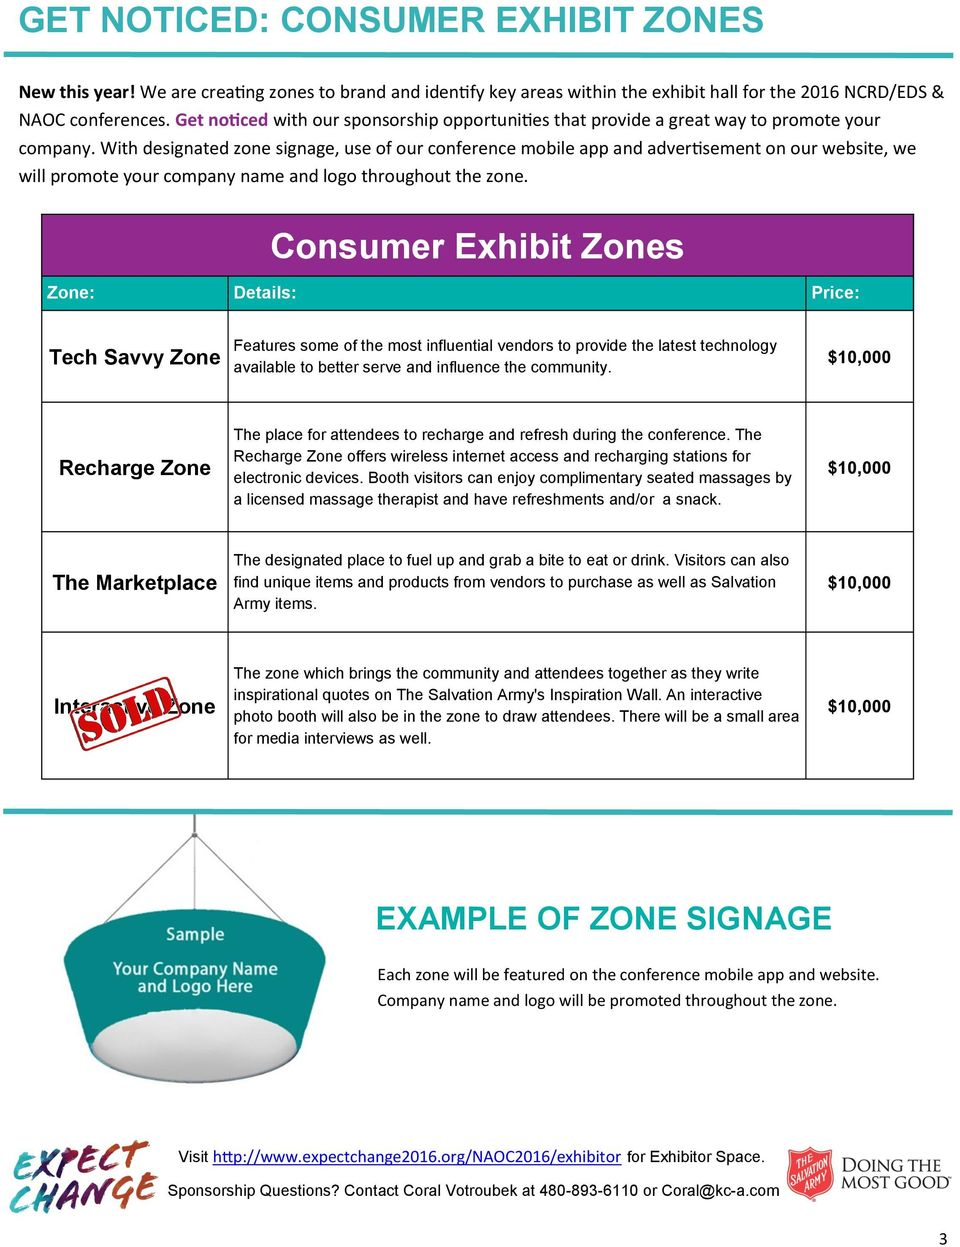 With designated zone signage, use of our conference mobile app and advertisement on our website, we will promote your company name and logo throughout the zone.